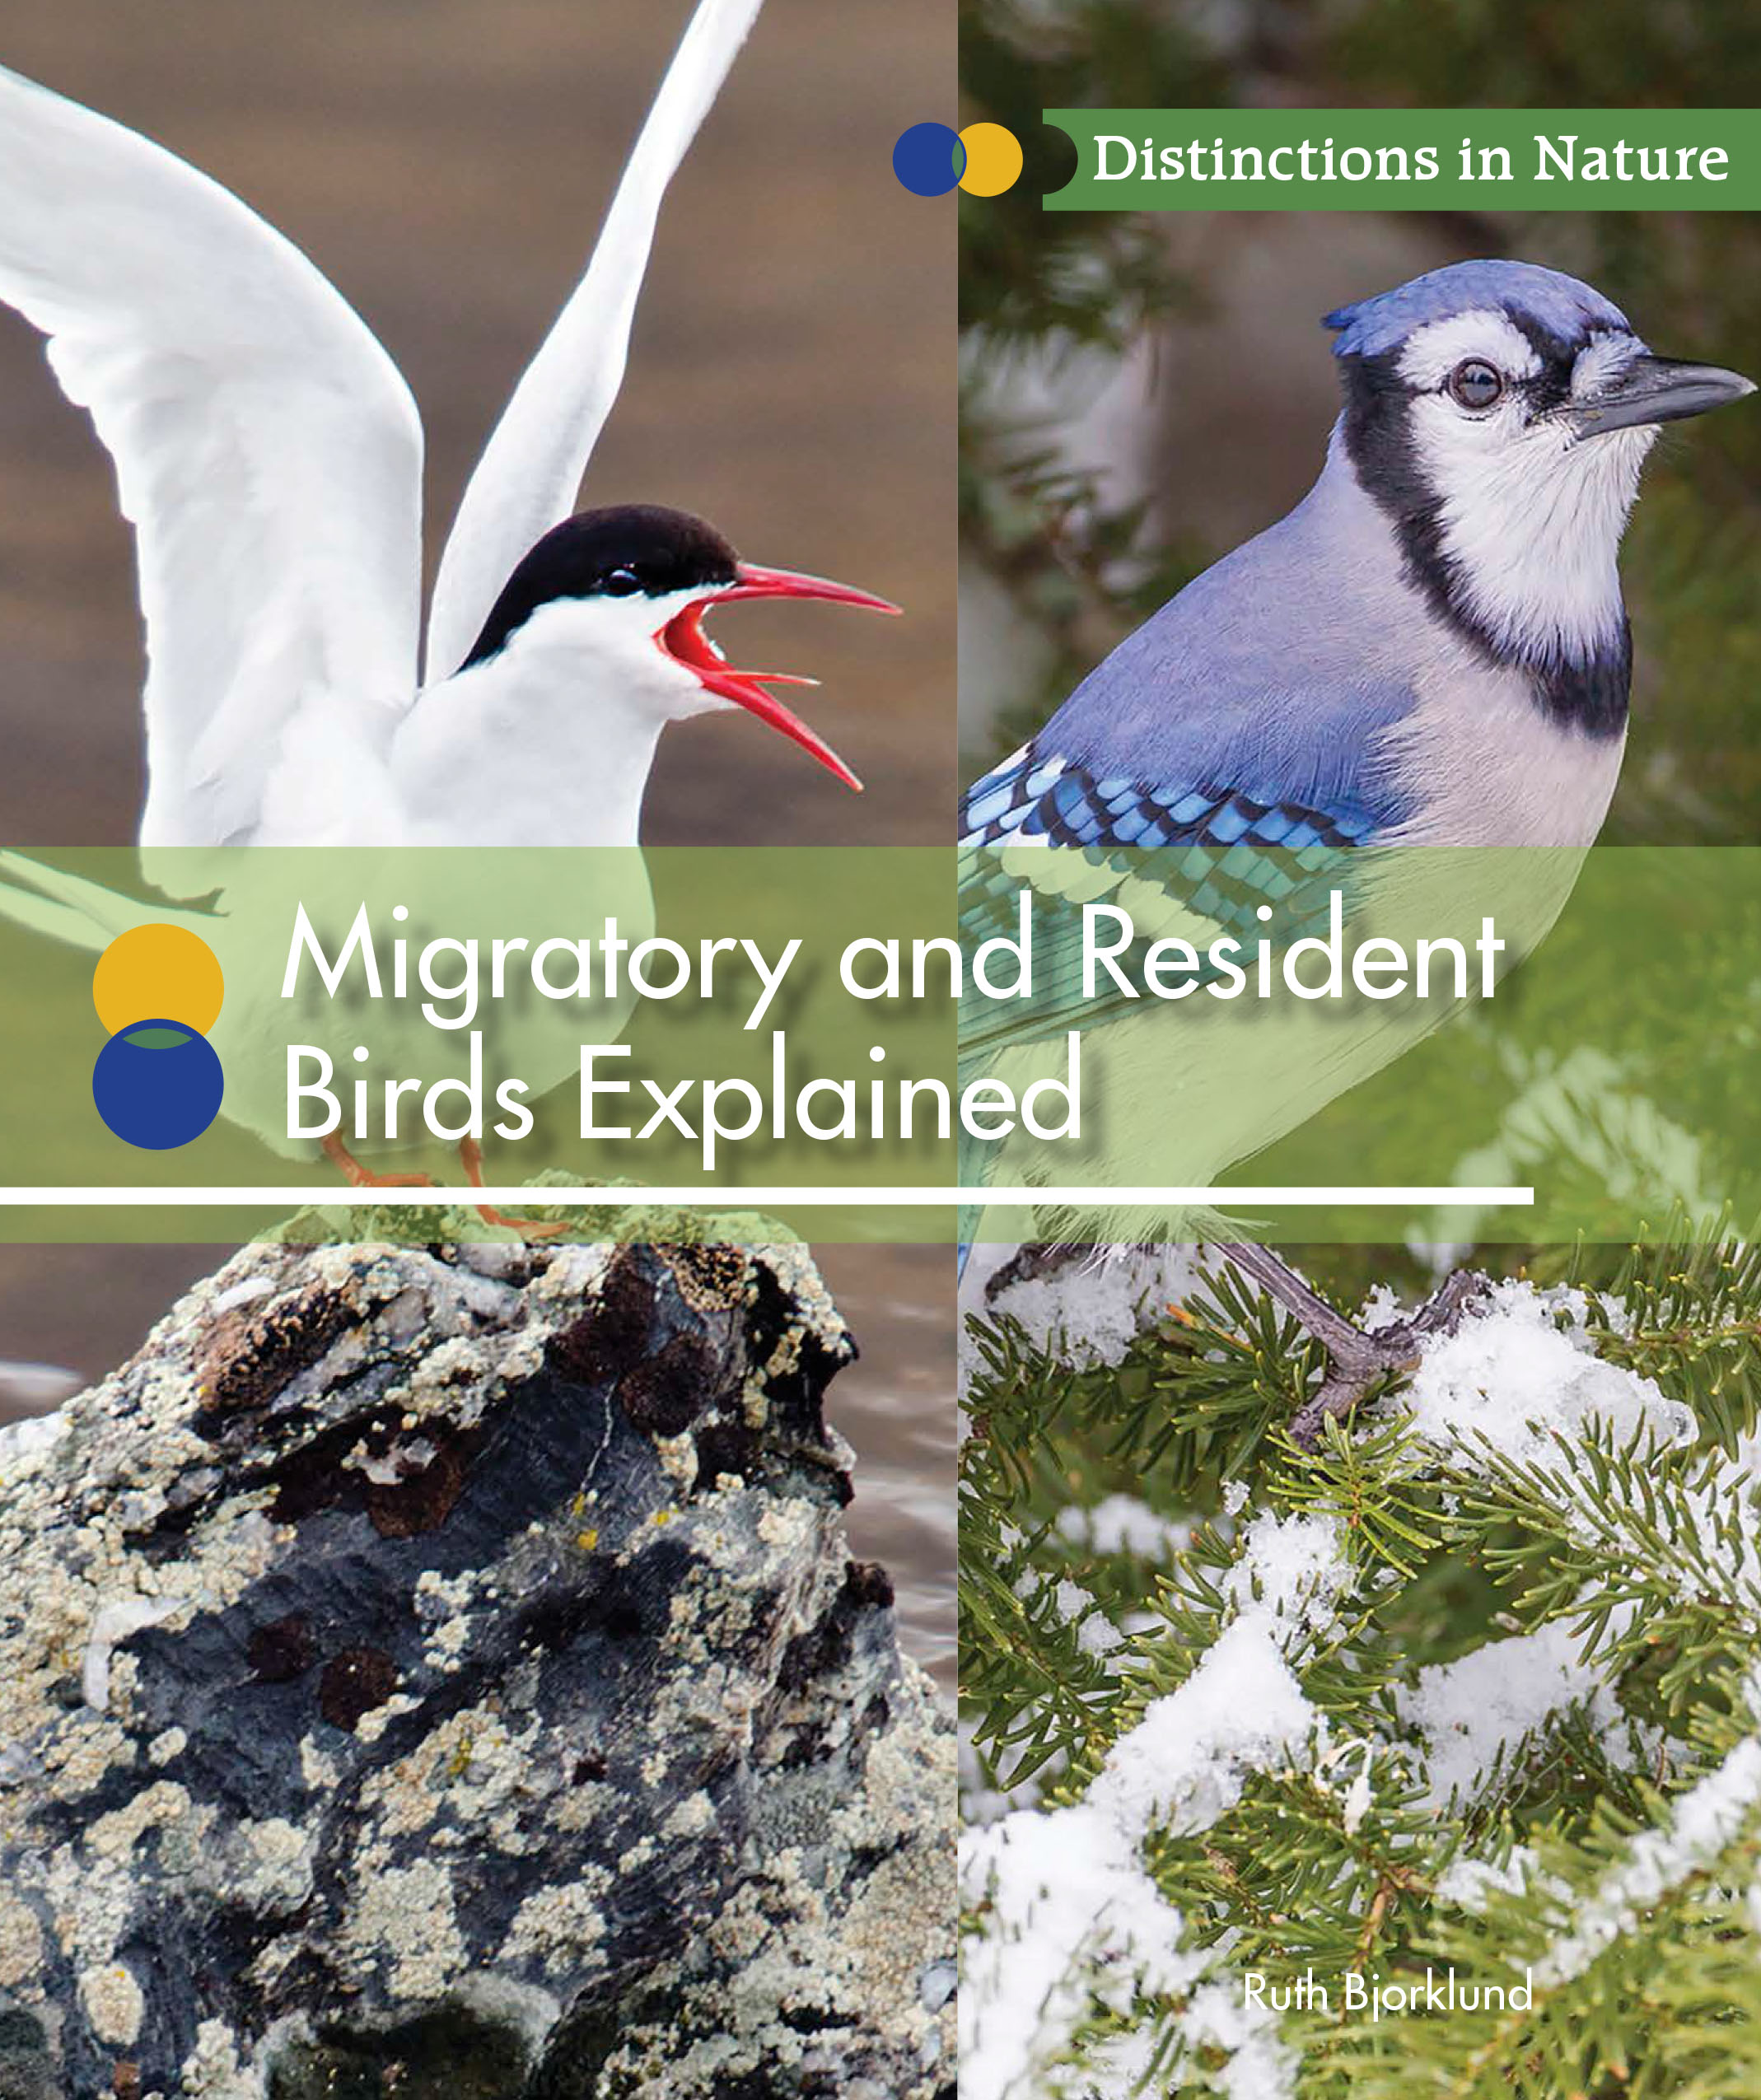 Migratory and Resident Birds Explained